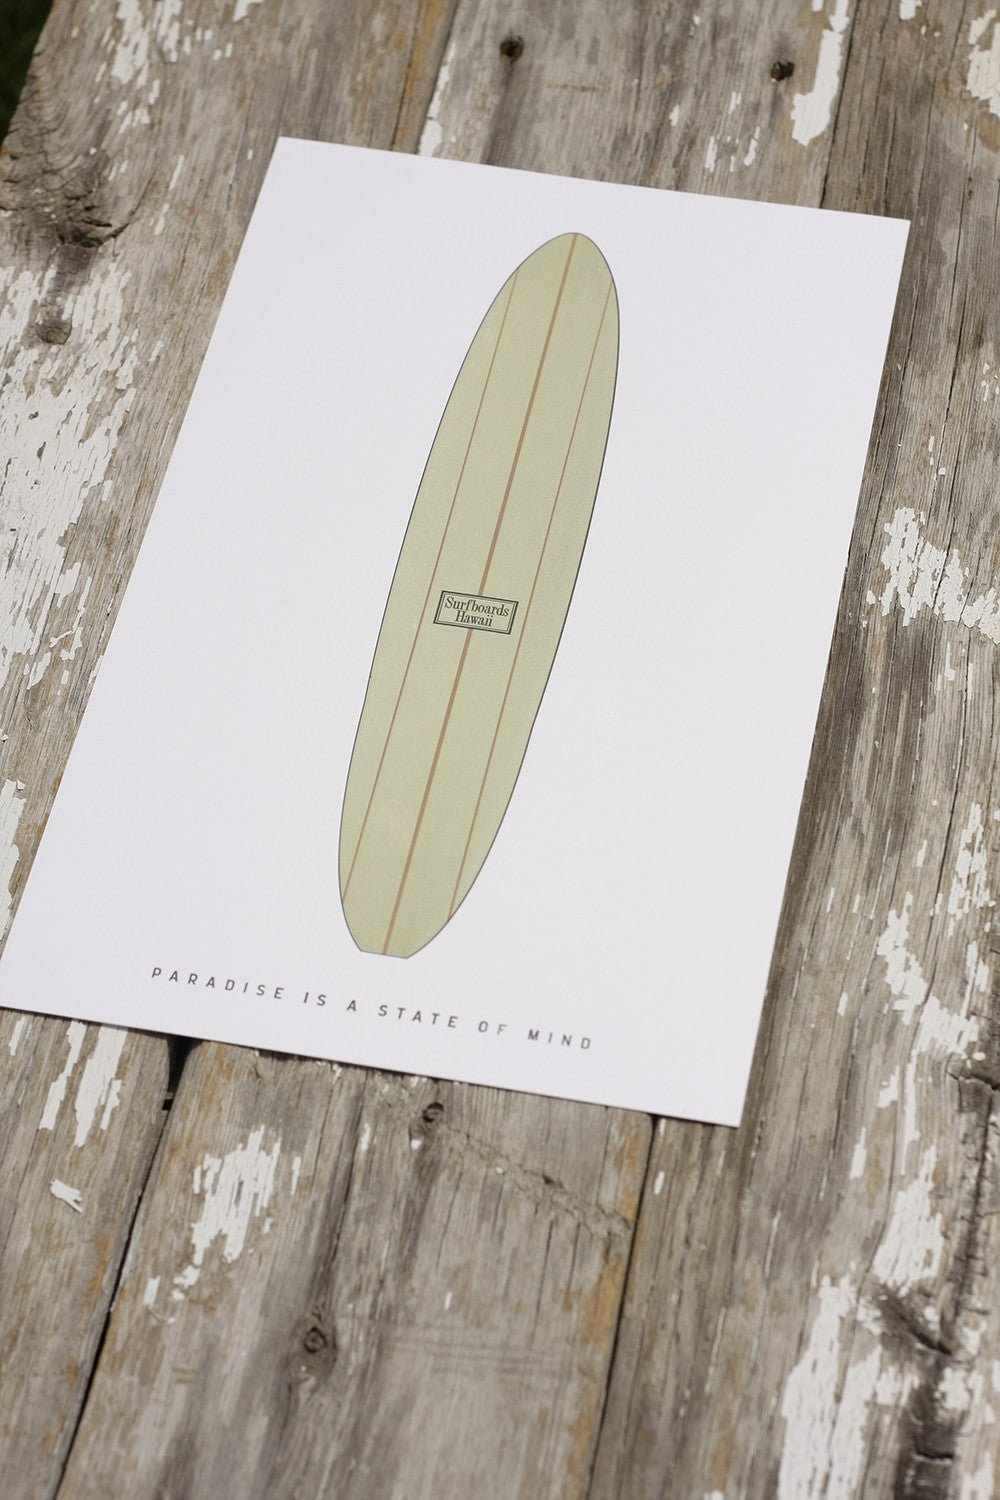 Letterpress Surfboard Printed by Dogs & Stars Boulder Denver Colorado